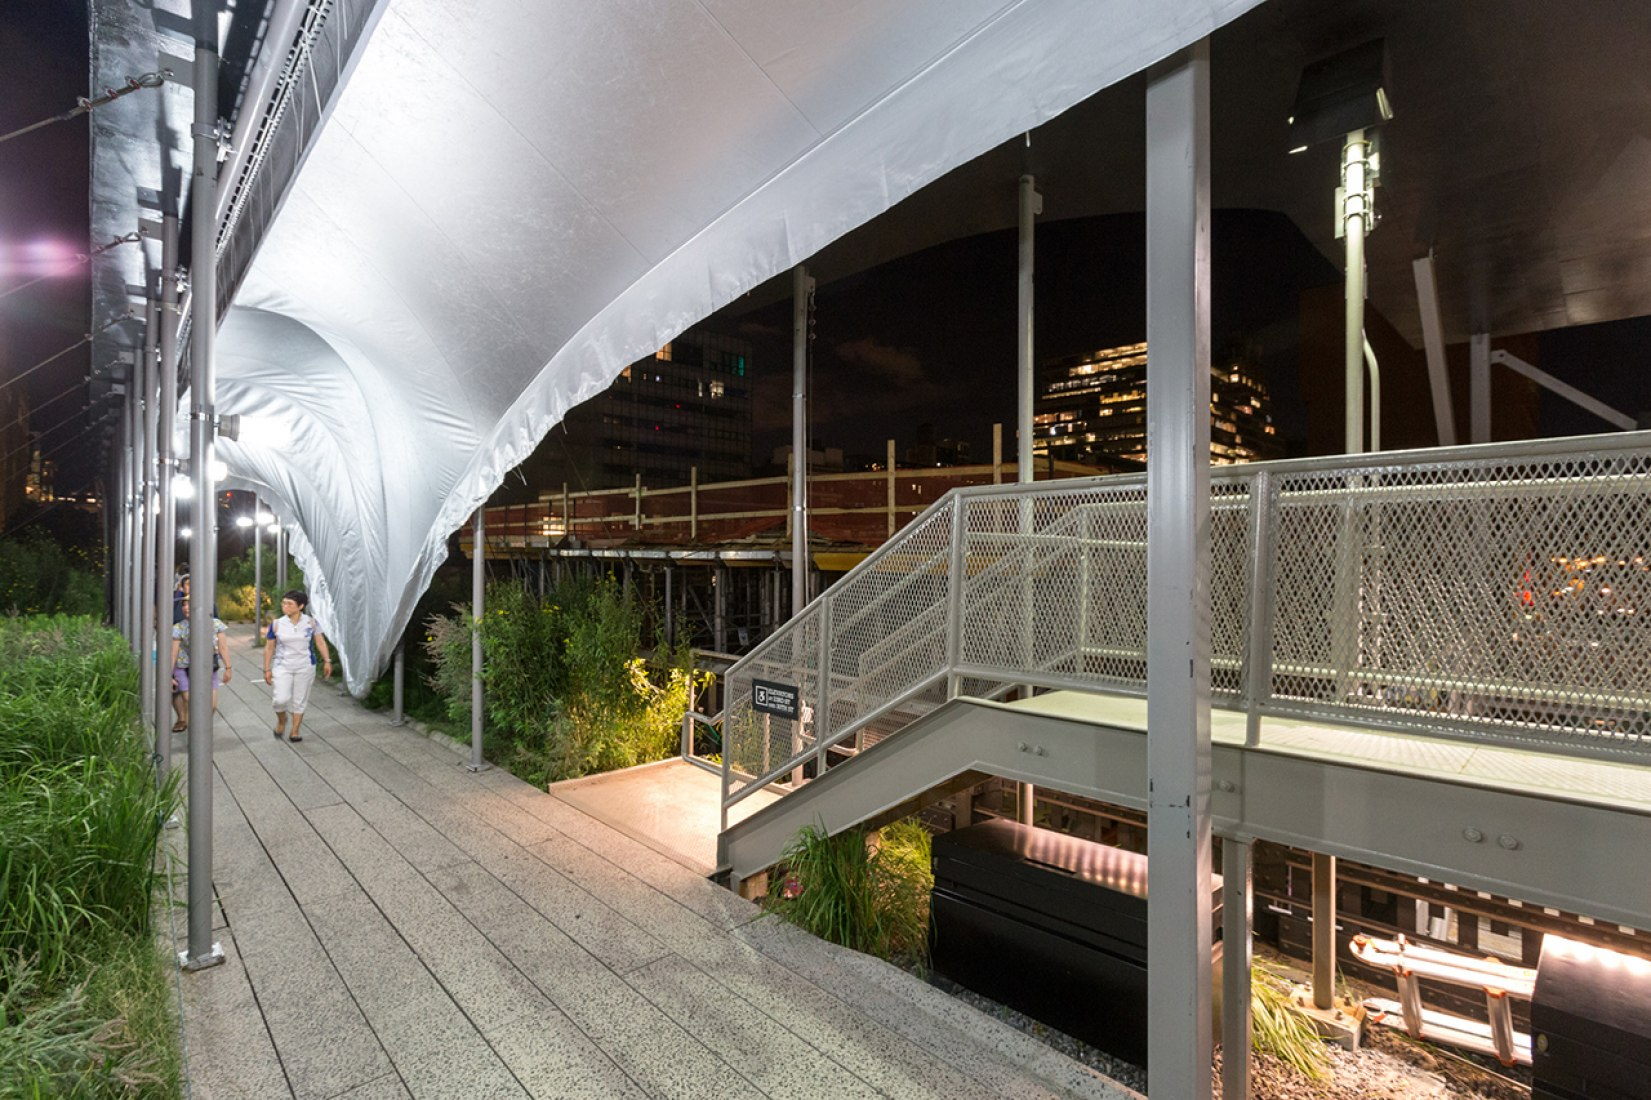 Canopy over the High Line by Zaha Hadid Architects. Photo by Max Touhey.